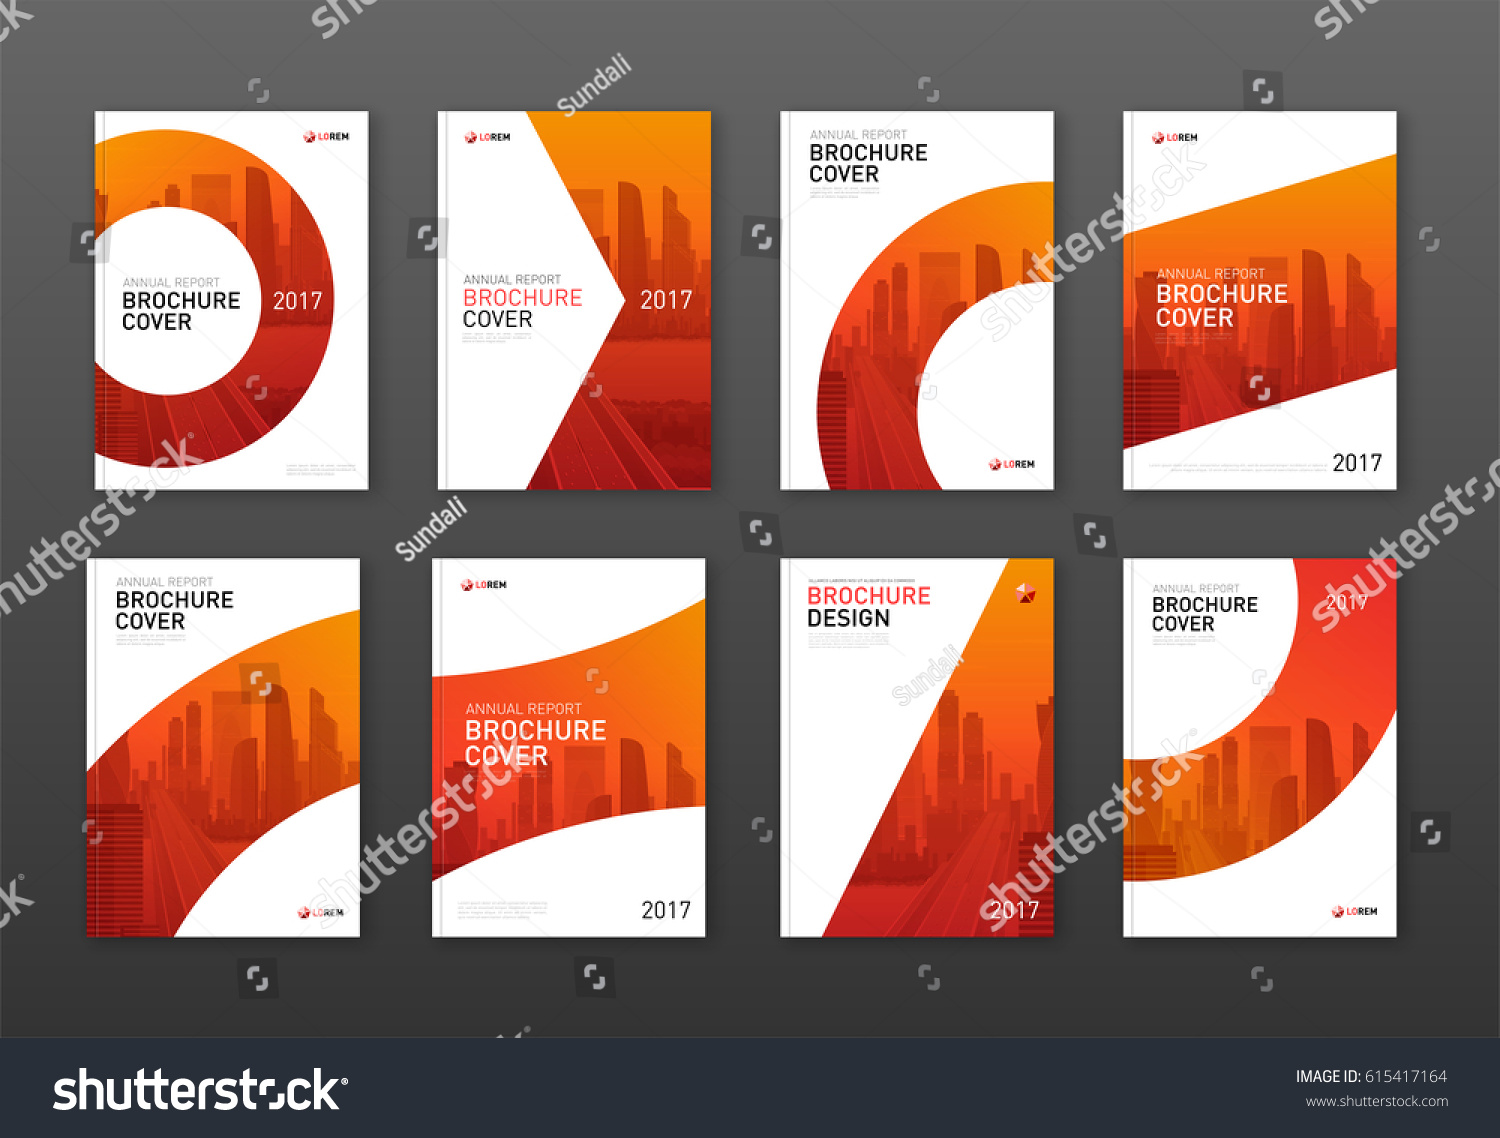 brochure cover design - brochure cover design layout set business stock vector